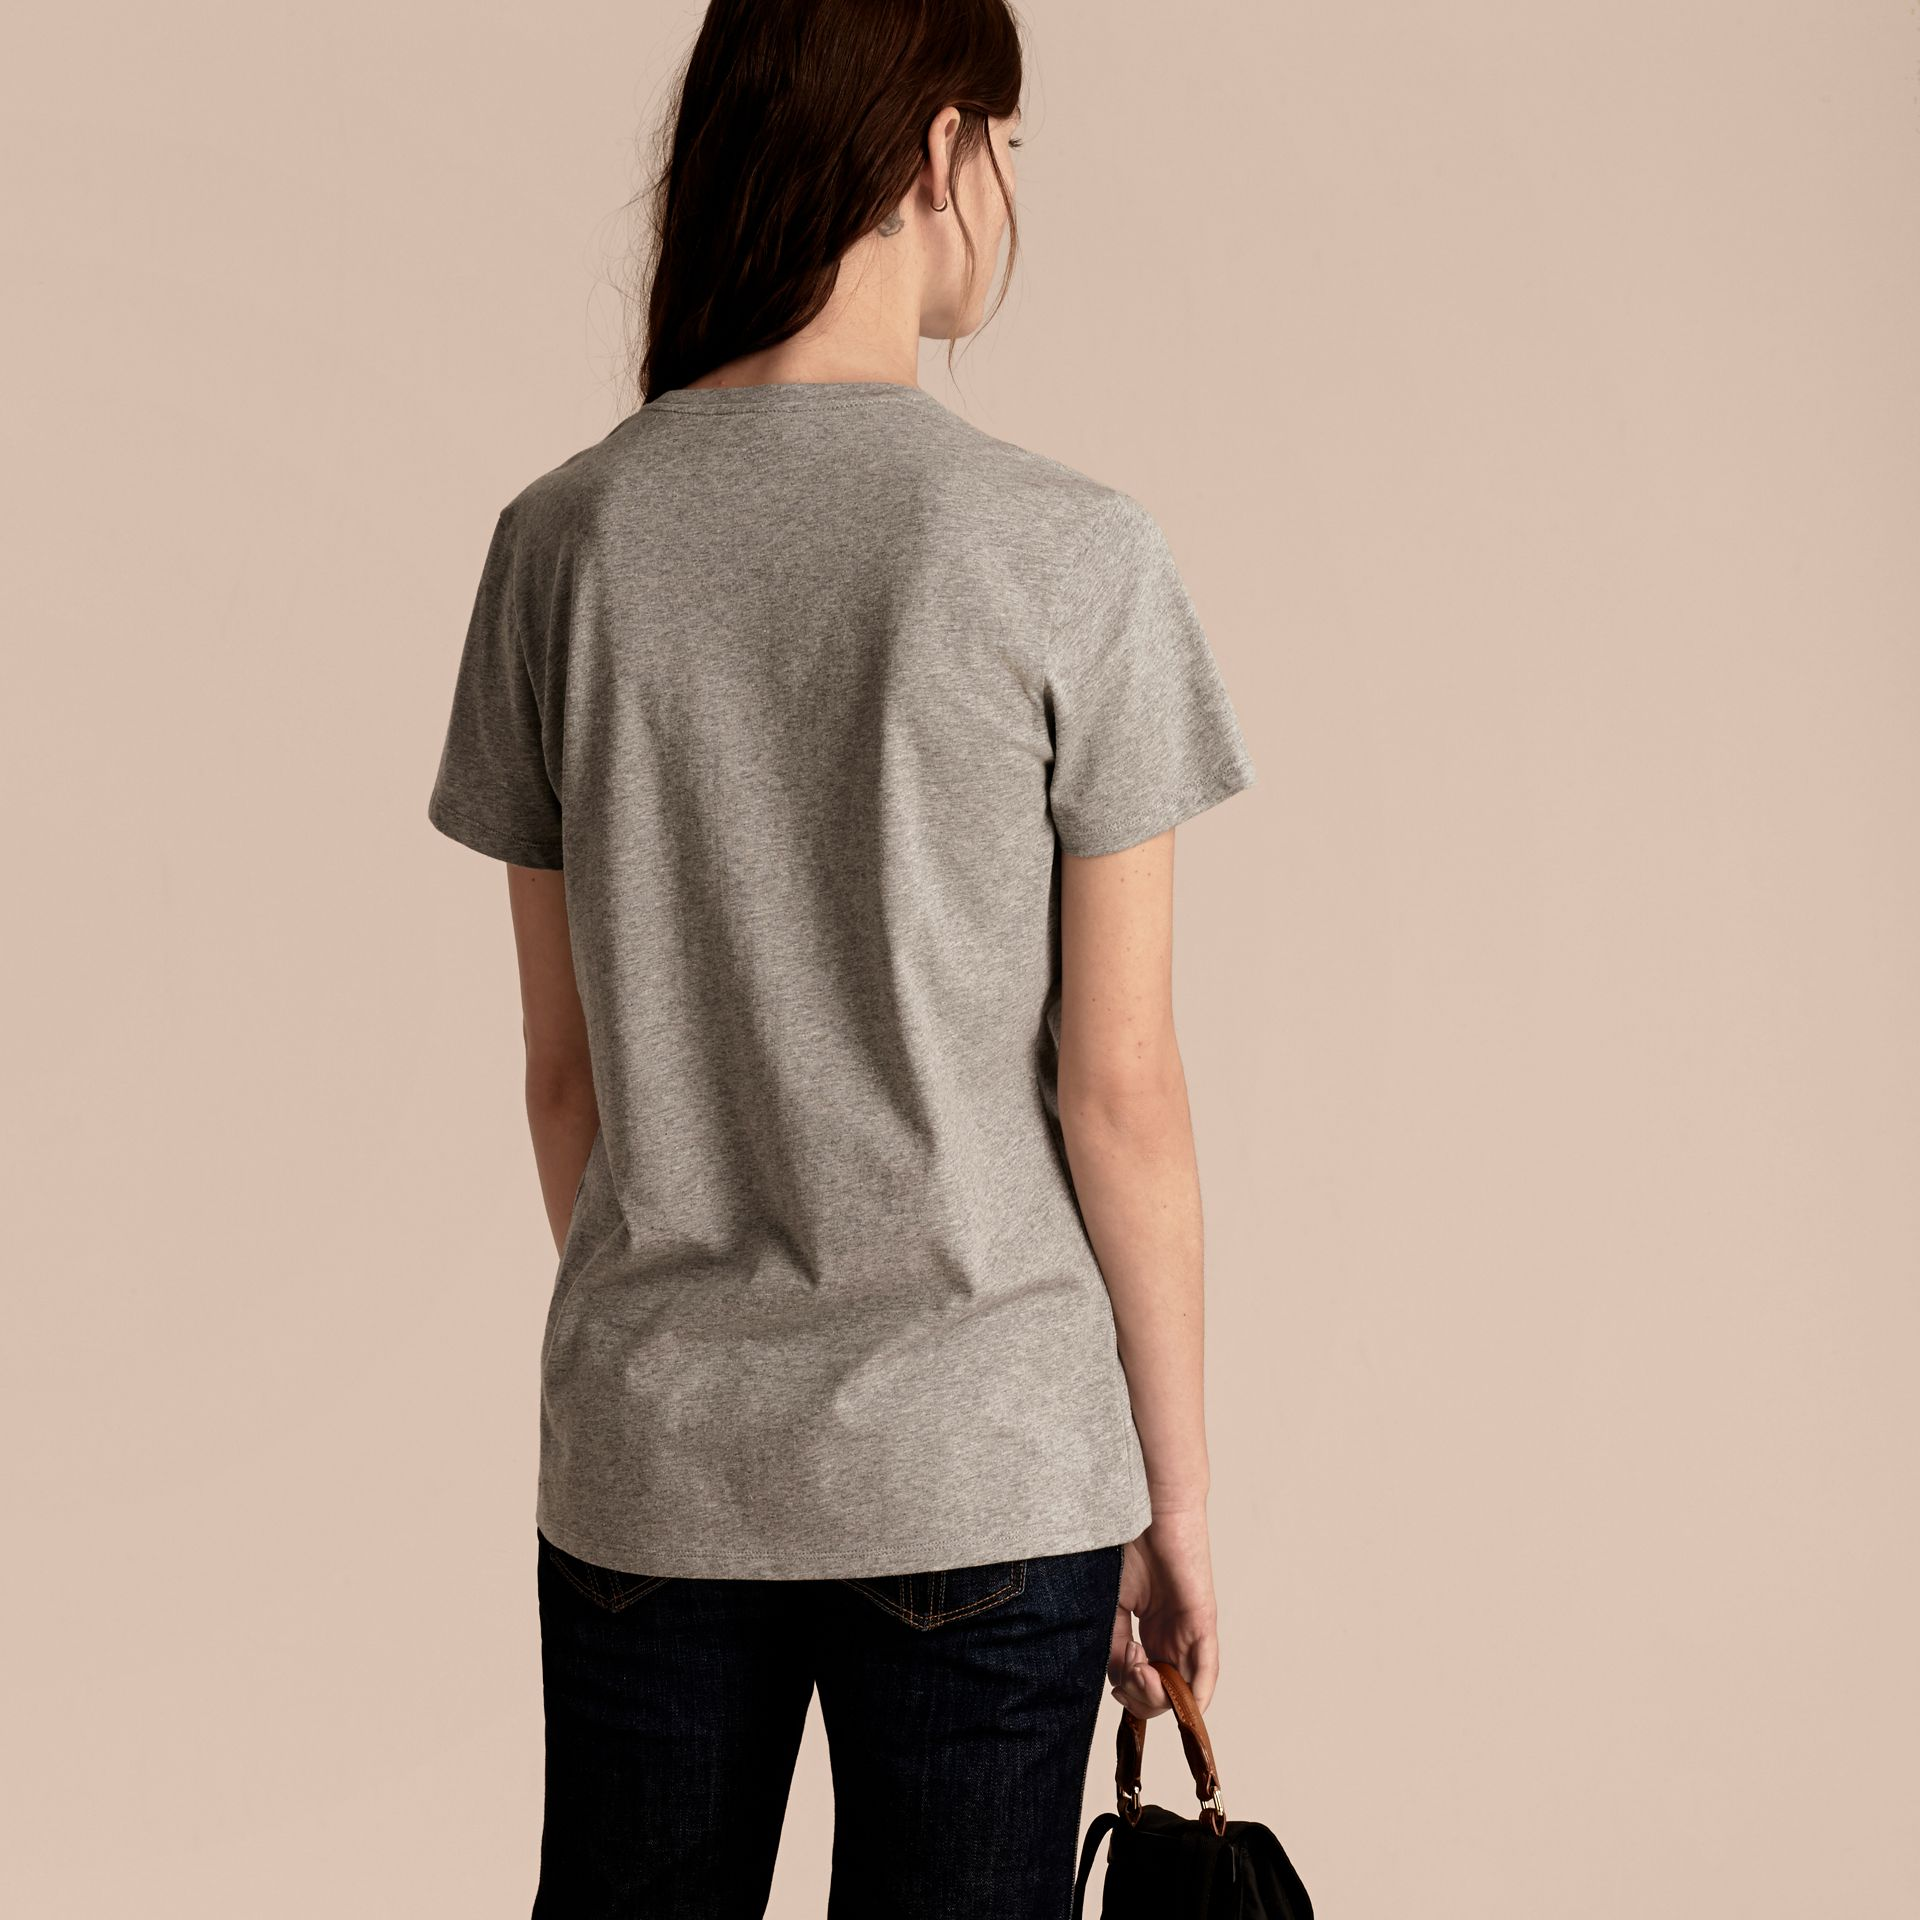 Pale grey melange Sequin Floral Appliqué Cotton T-Shirt Pale Grey Melange - gallery image 3